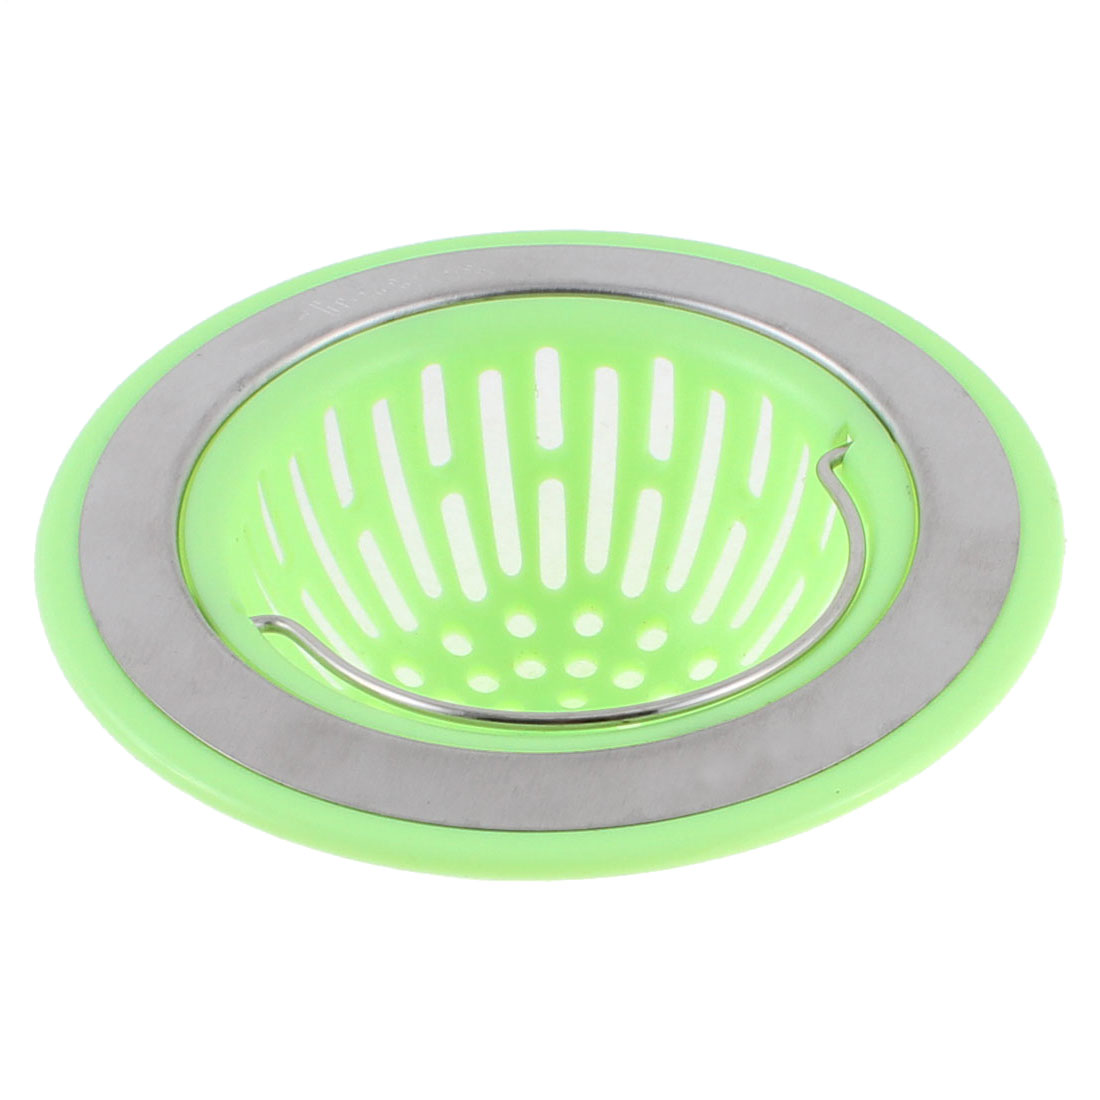 Kitchen Bathroom Sink Strainer Waste Disposal Drain Filter Hair Catcher Stopper